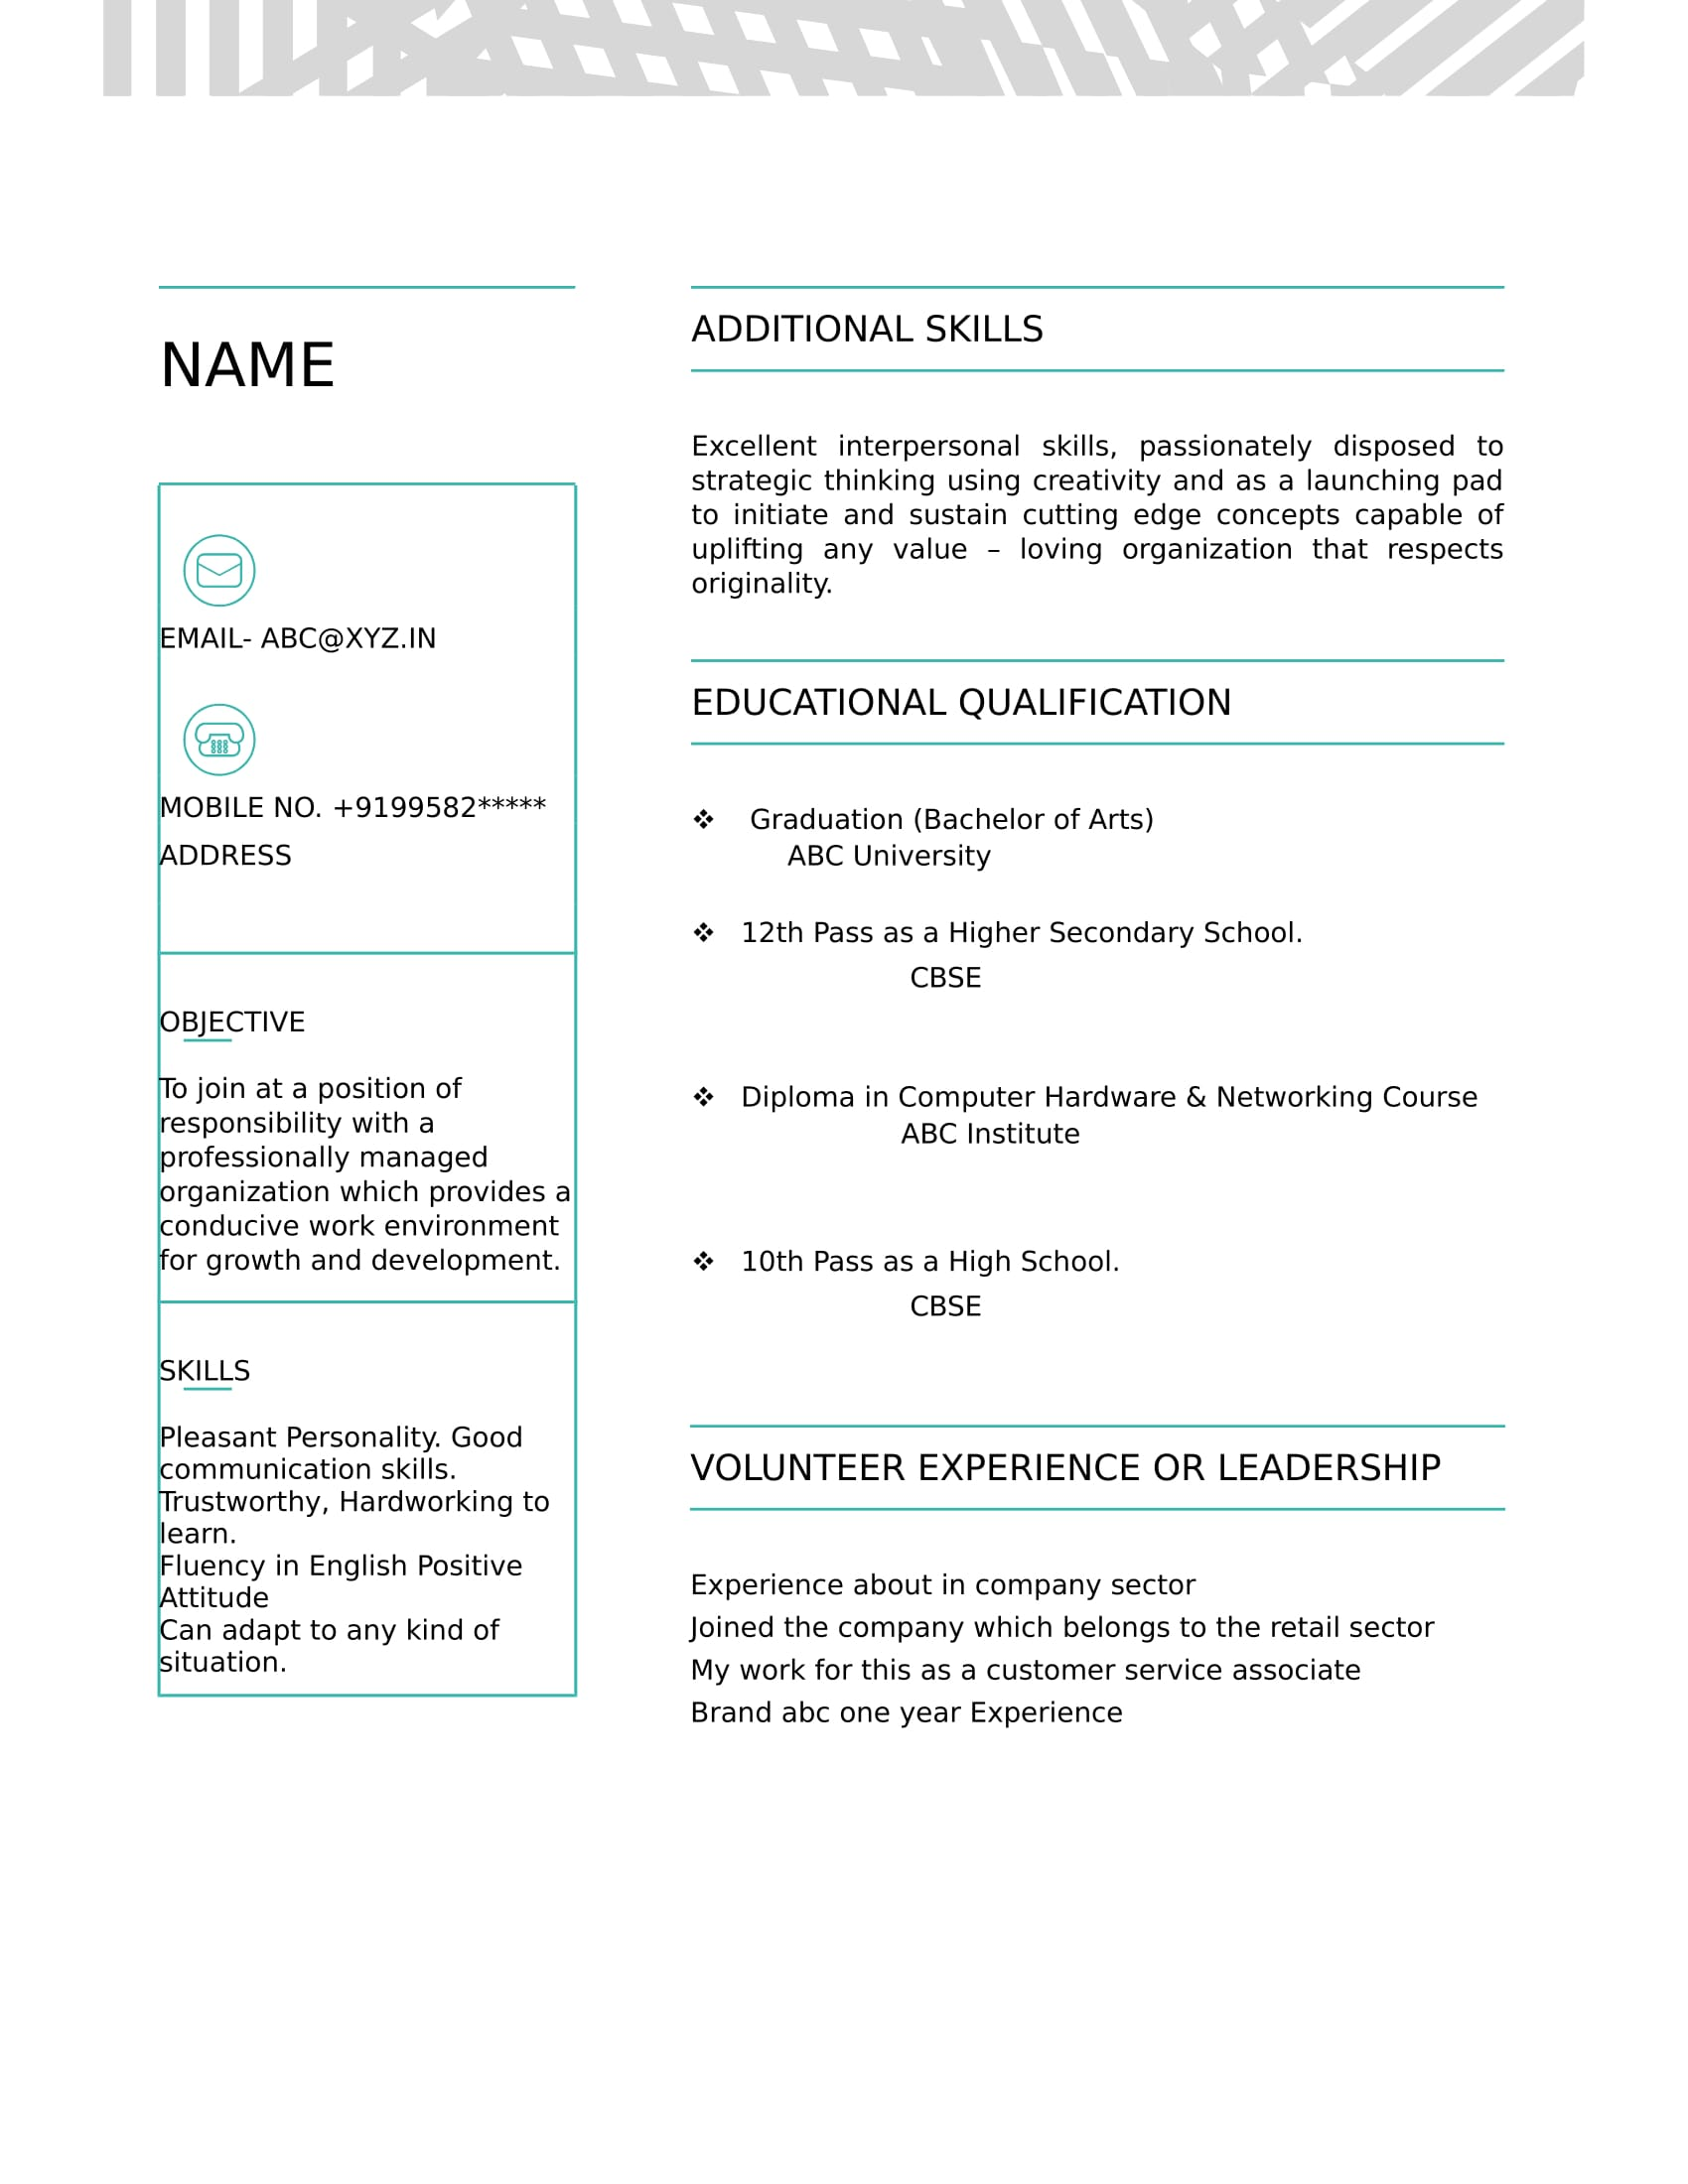 resume templates for ba freshers